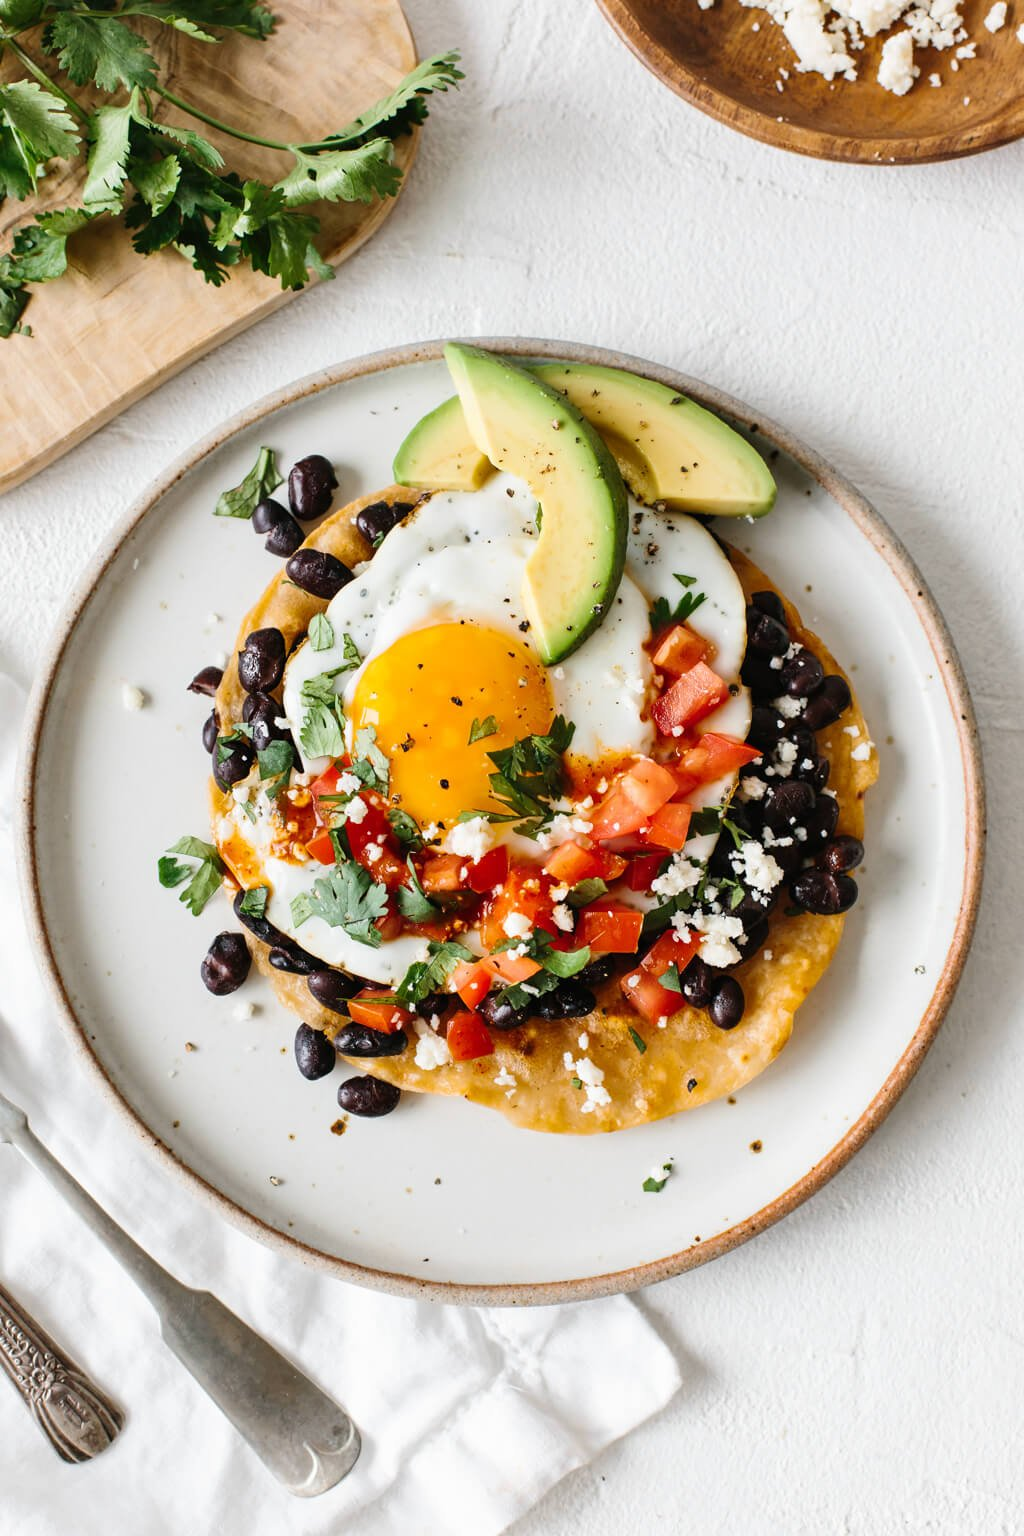 Huevos rancheros on a white plate topped with slices of avocado.